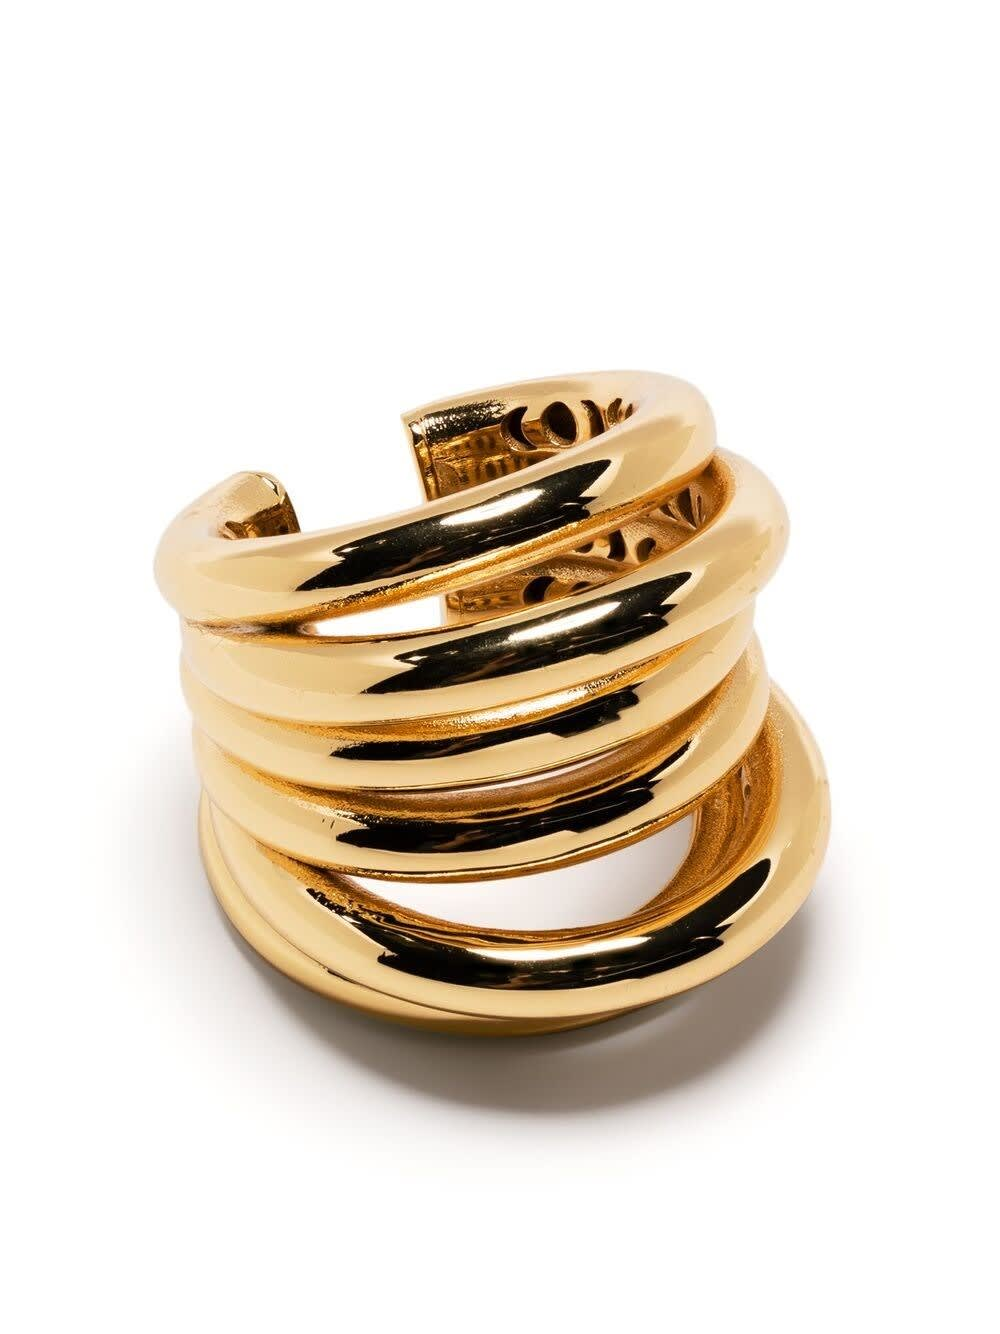 Federica Tosi ALE GOLD-COLORED BAND RING